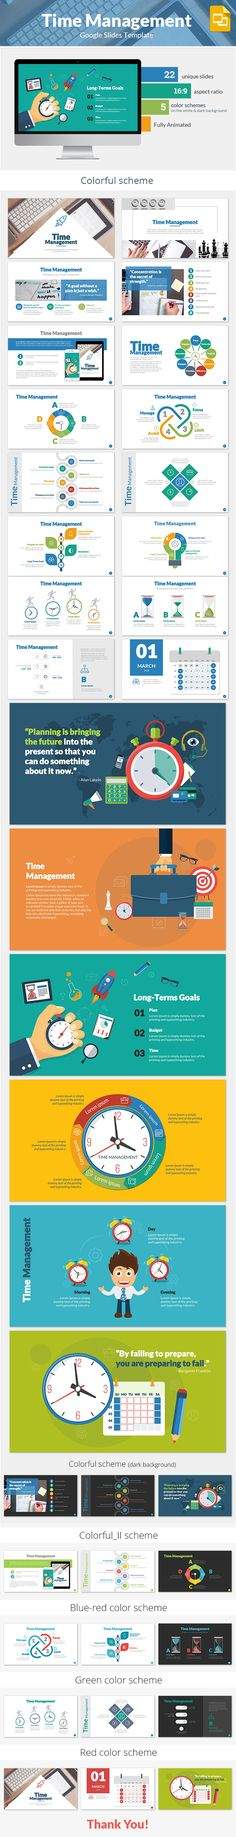 Time Management Keynote Presentation Template for Mac Need to manage your project? Please check it.Time Management Keynote Present Presentation Slides, Powerpoint Presentation Templates, Presentation Design, Keynote Presentation, Planner Template, Keynote Template, Time Management Worksheet, Project Management, Pptx Templates